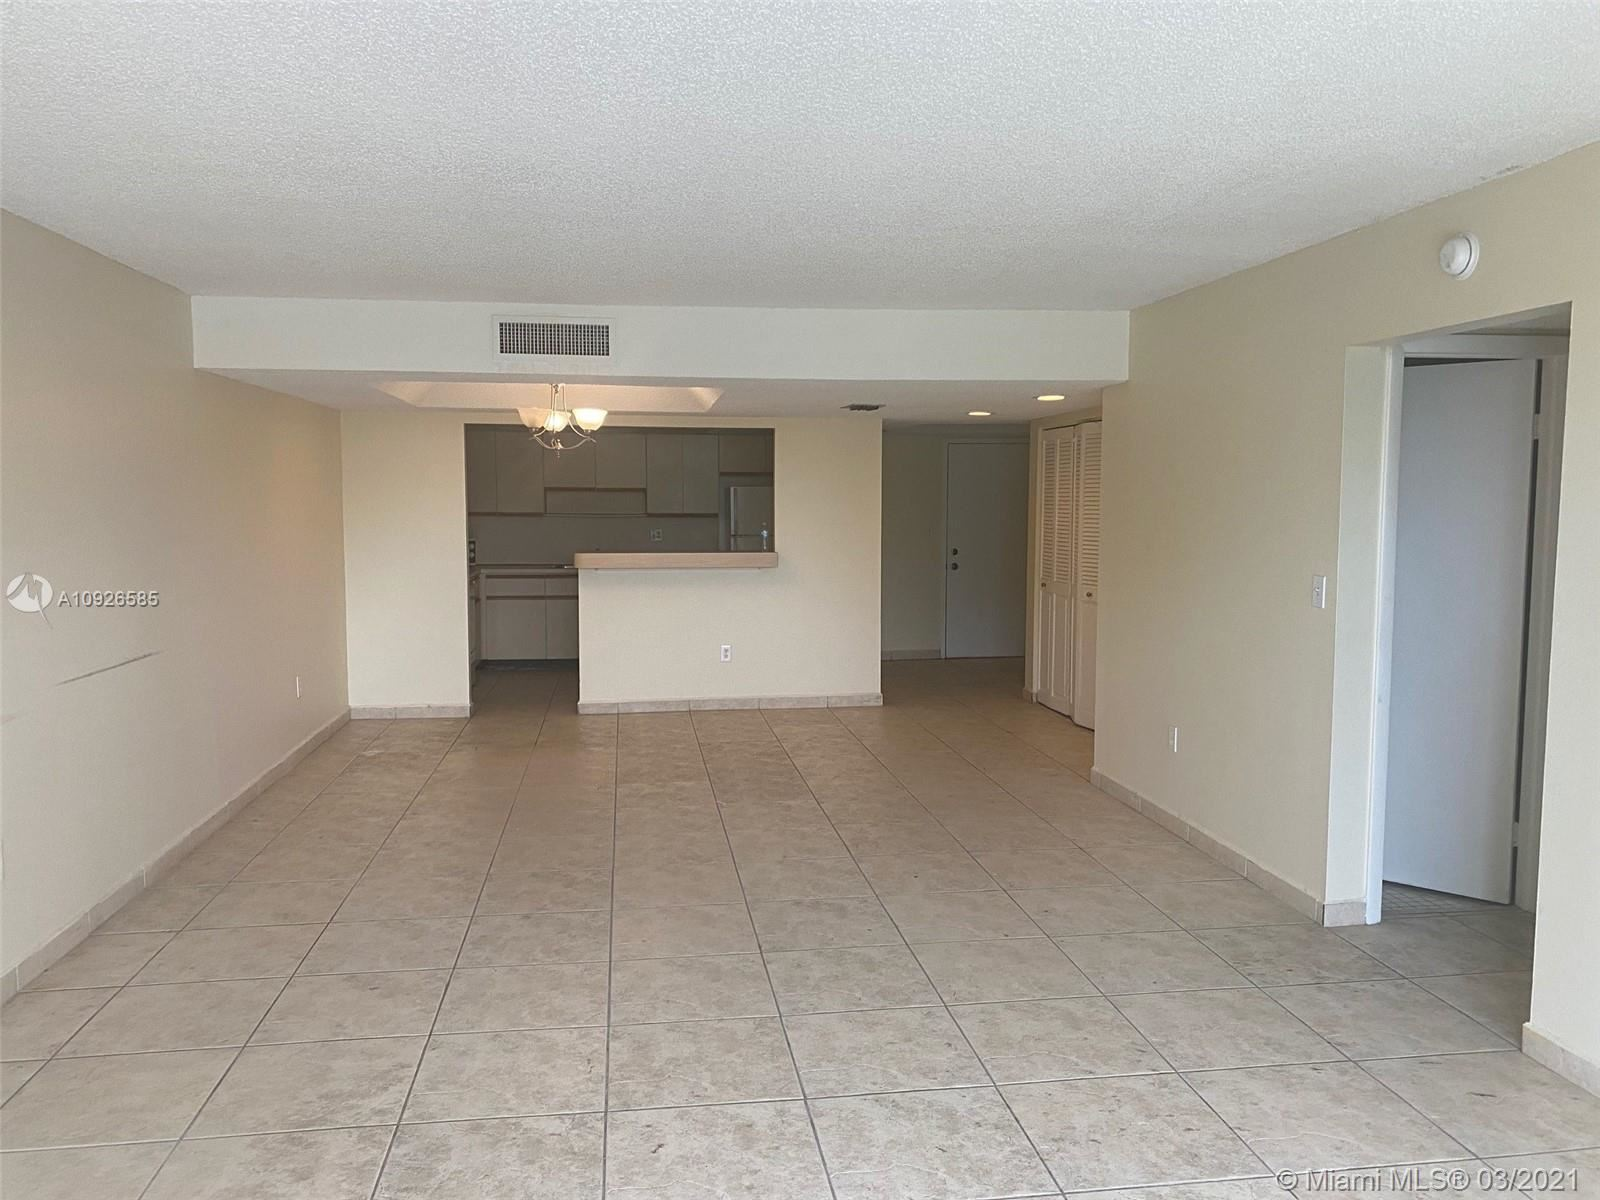 9735 NW 52nd St #409, Doral, FL 33178 - #: A10926585